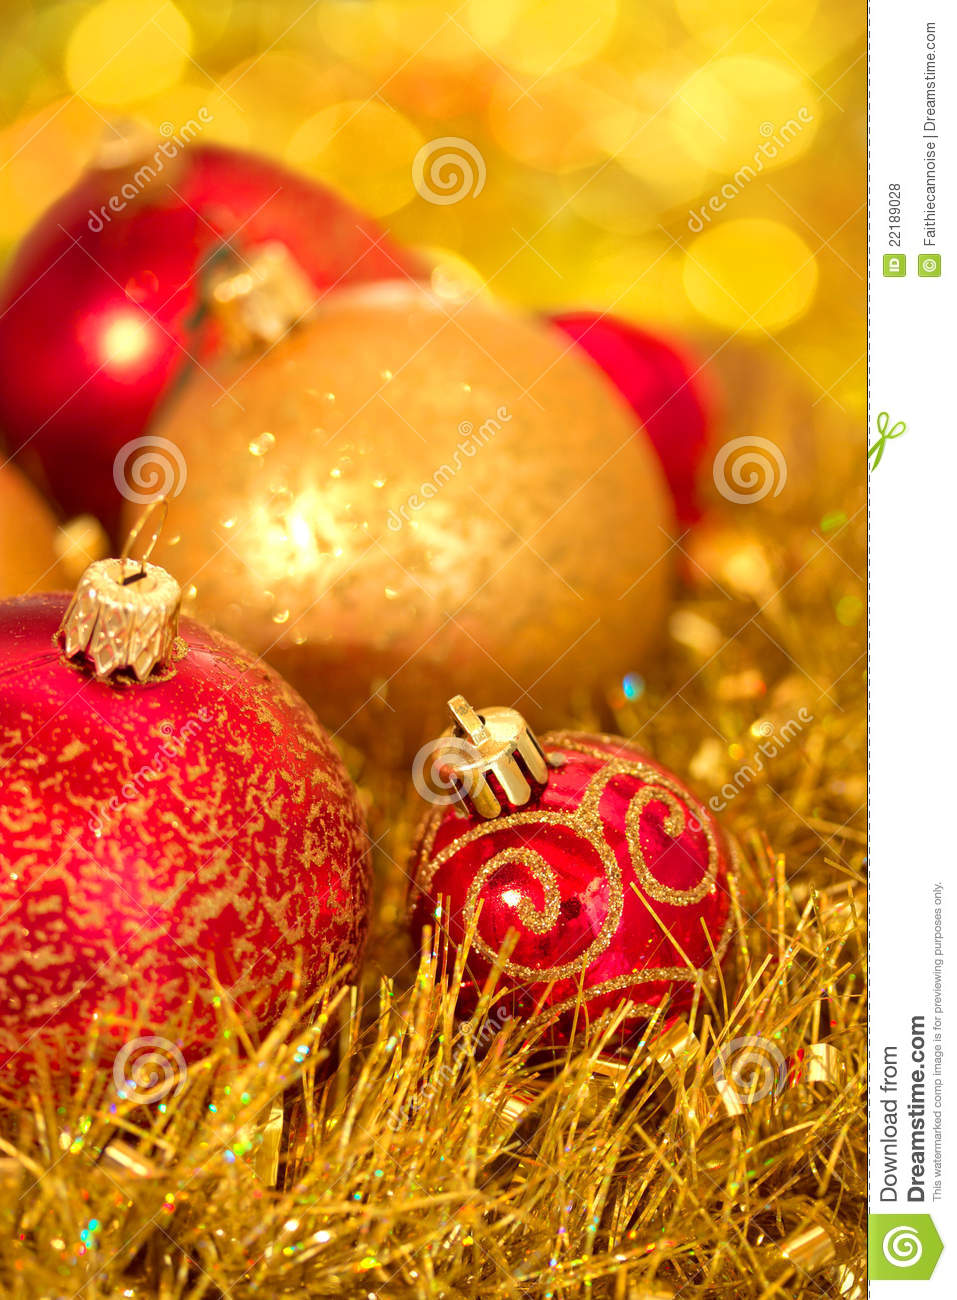 Beautiful Shining Christmas Ornaments Stock Photo - Image ...